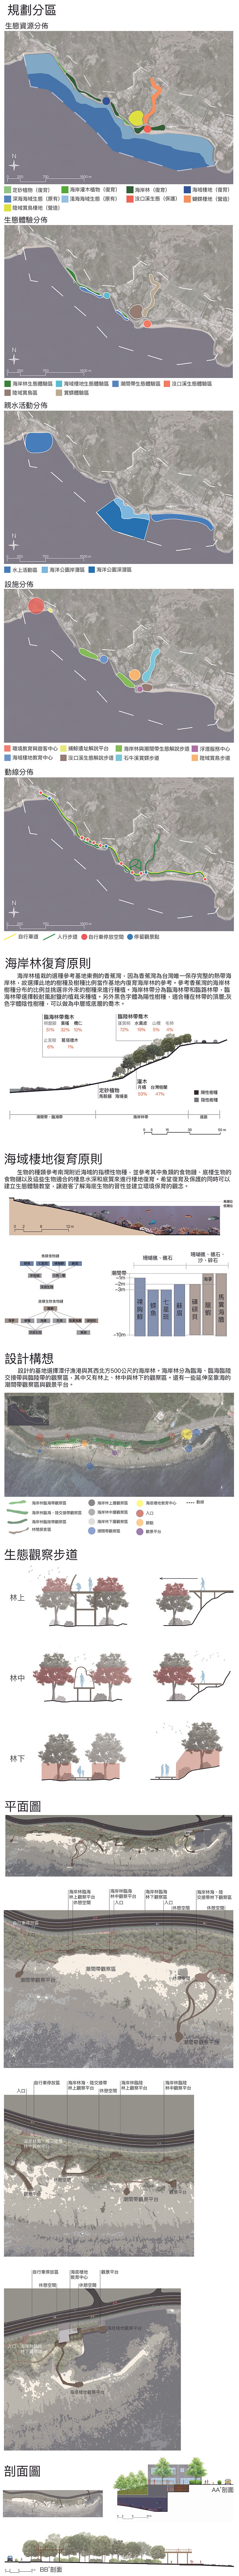 Greening Corridor On Kenting Coastline-作